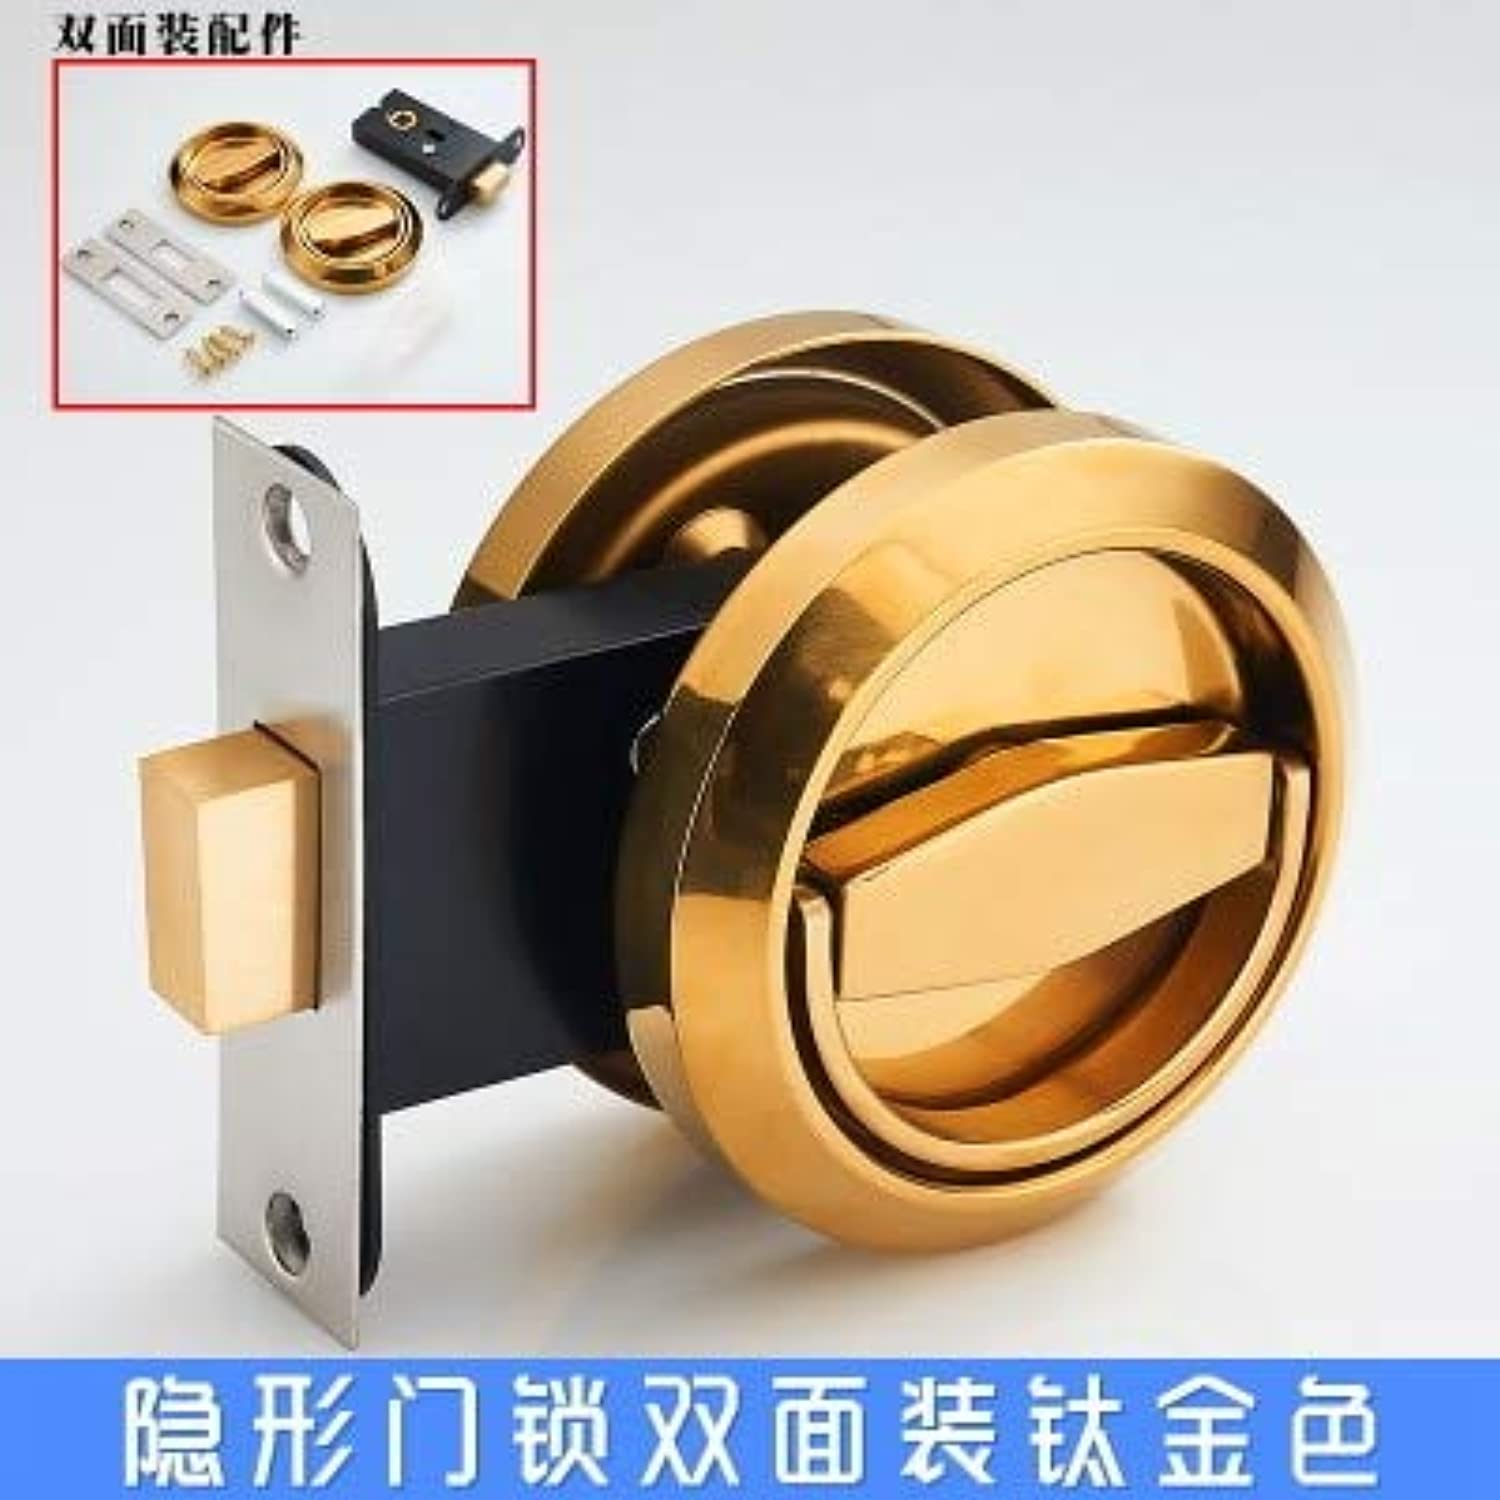 New Style Door Locks Invisible Locks, 3 colors,Backdrop Invisible handleNo Key,Door Latch for washroom Bedroom  (color  gold)